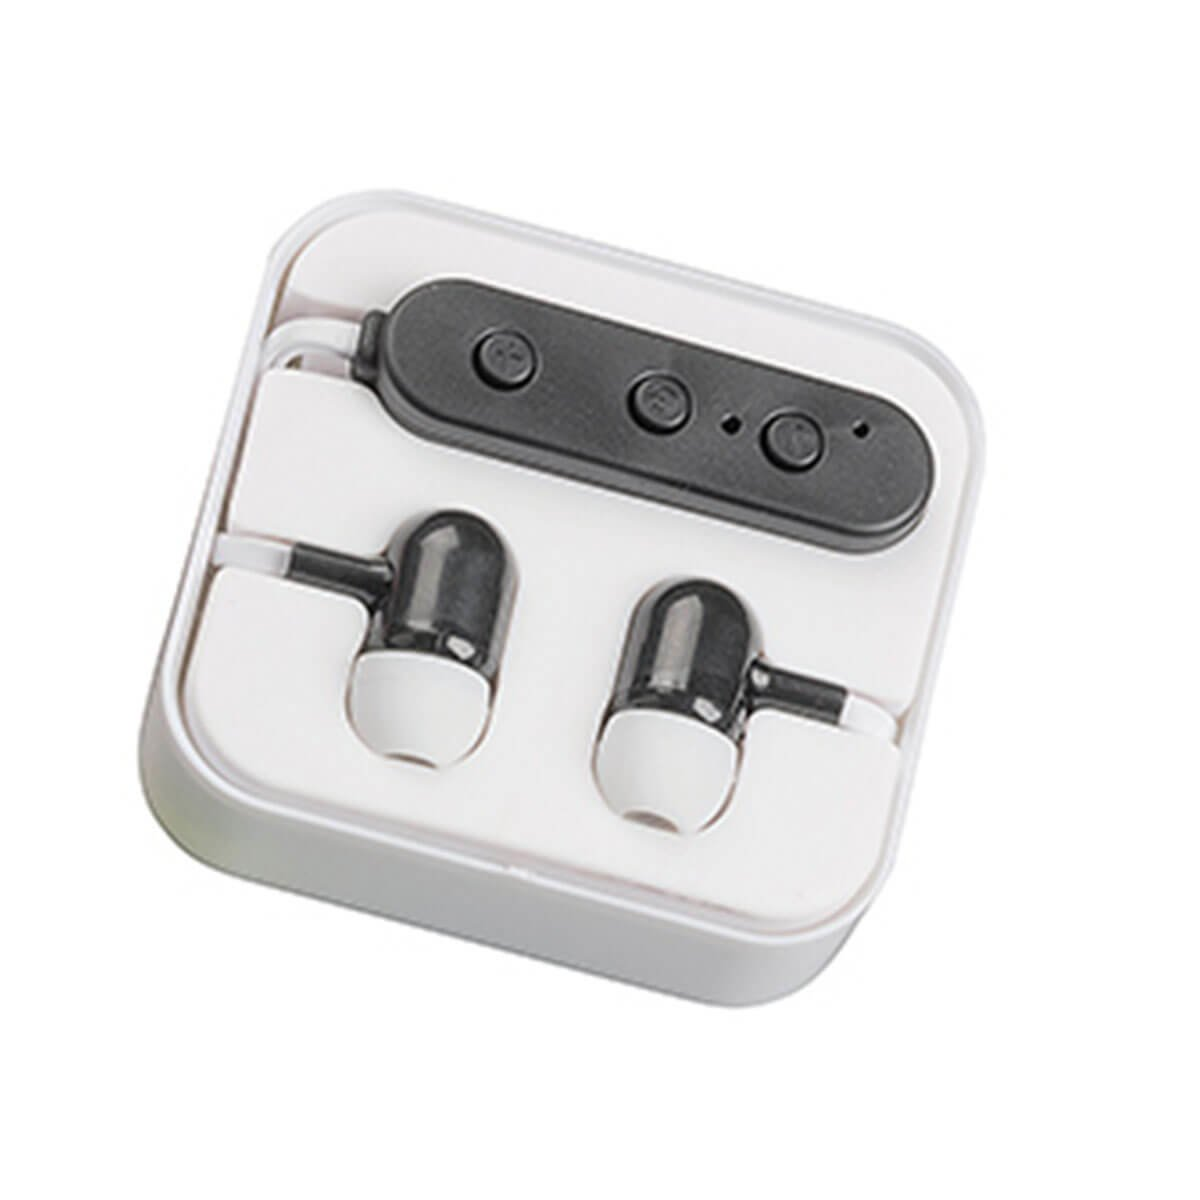 Colourpop Bluetooth Earbuds-White